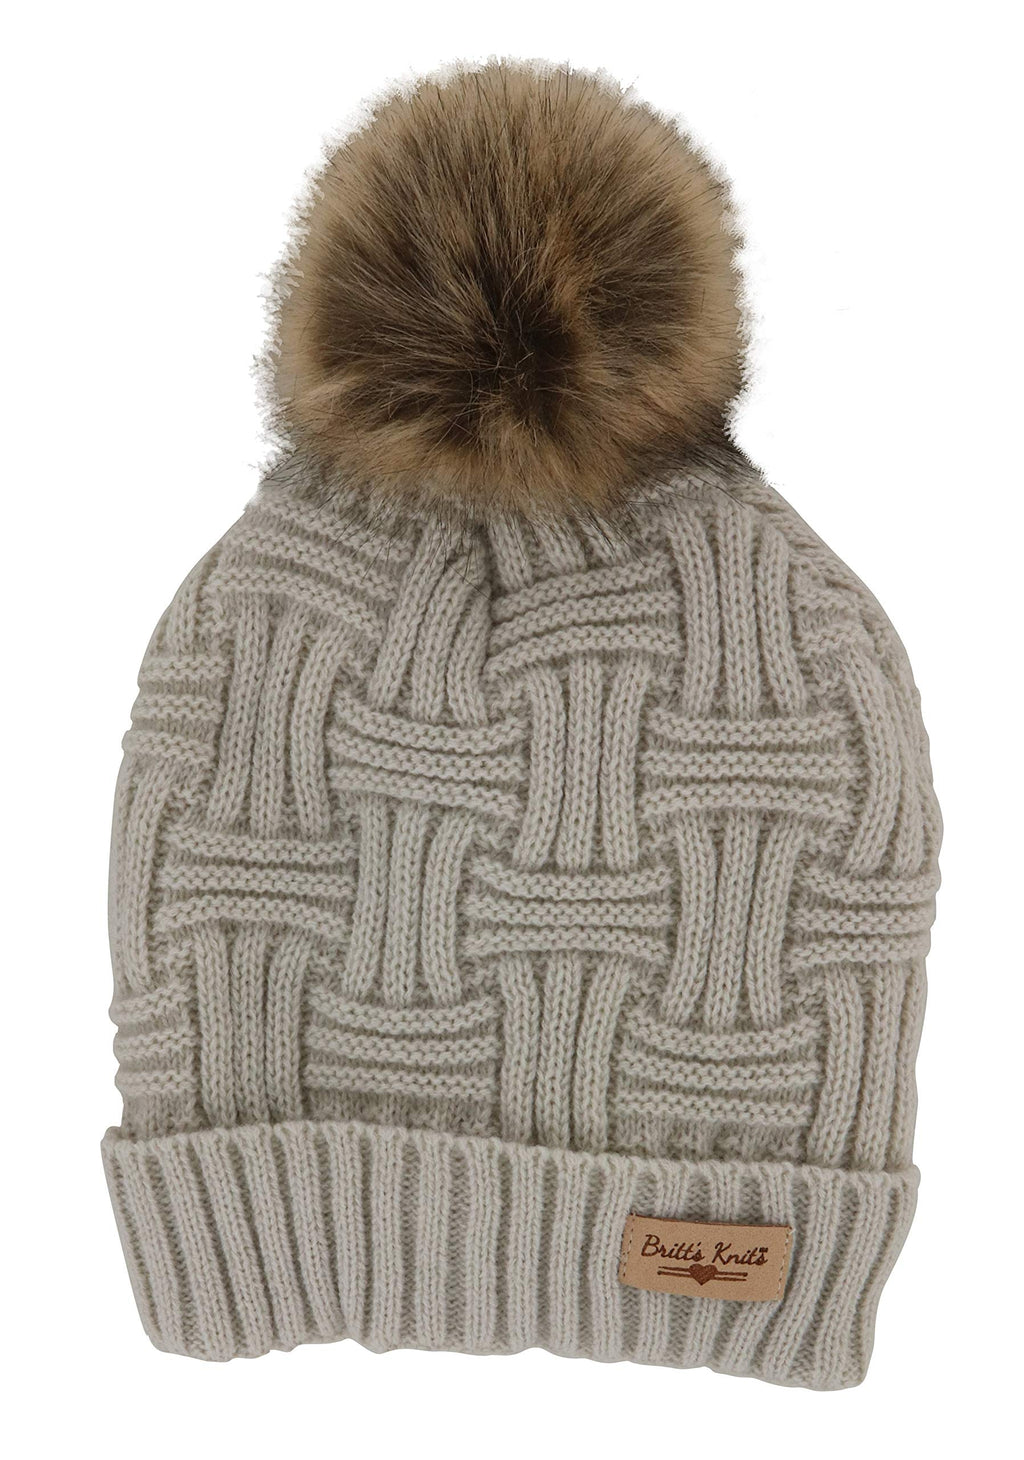 Britt's Knits Women's Plush-Lined Knit Hat with Pom Oatmeal